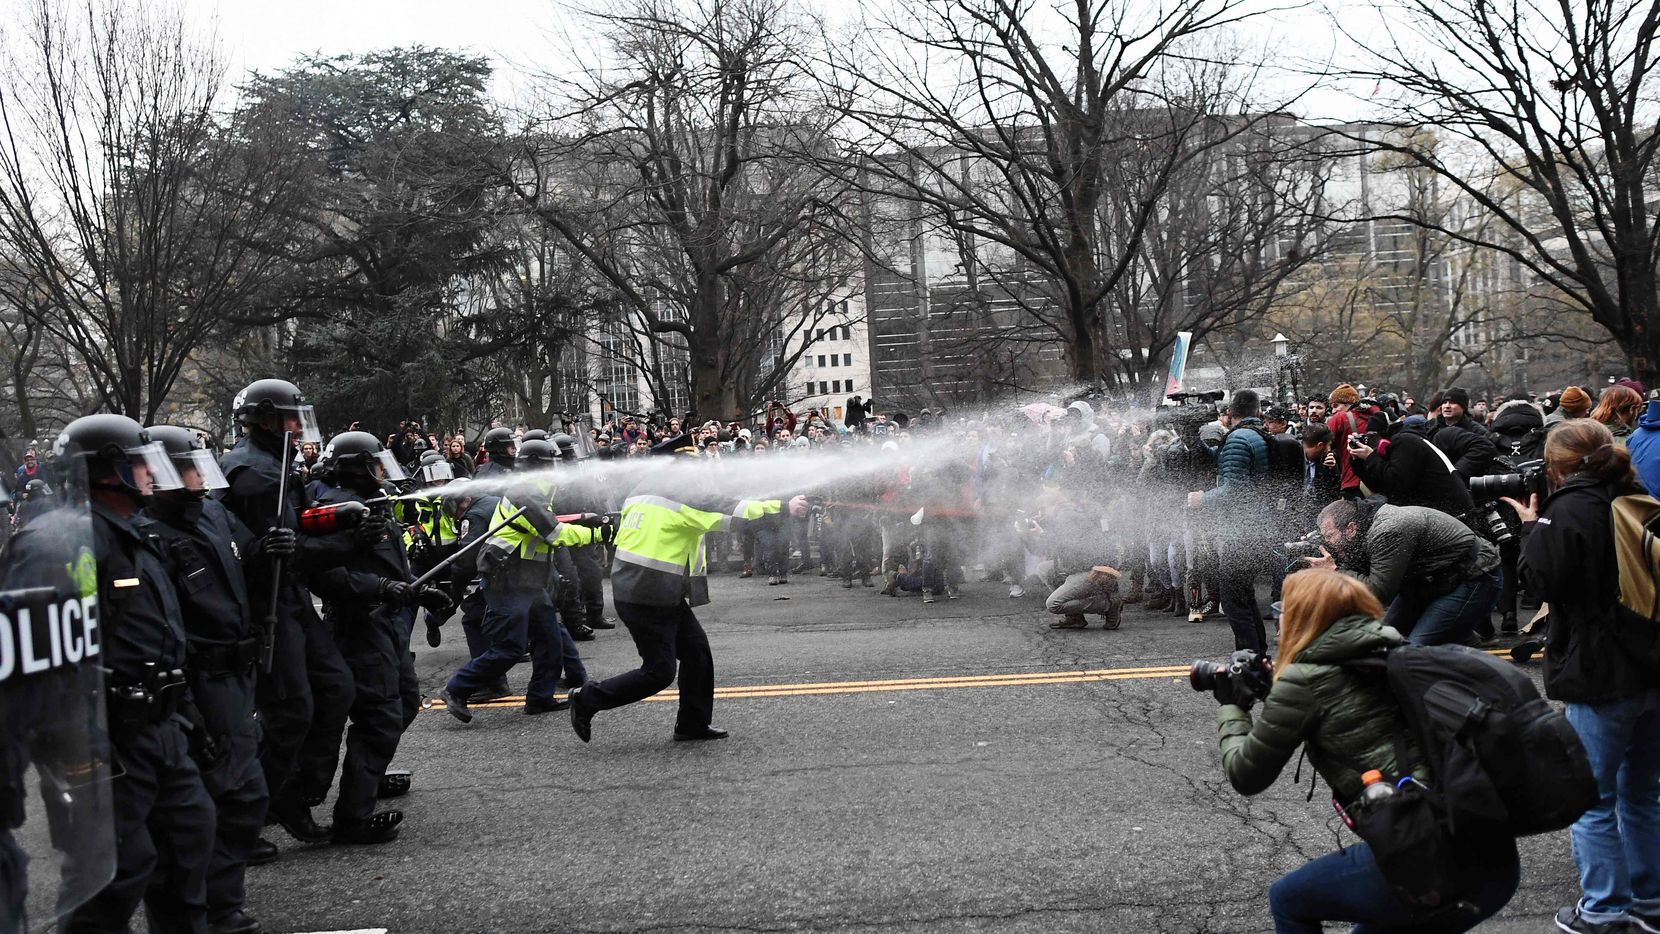 TOPSHOT - Police pepper spray at anti-Trump protesters during clashes in Washington, DC, on January 20, 2107.   Masked, black-clad protesters carrying anarchist flags smashed windows and scuffled with riot police Friday in downtown Washington, blocks away from the route of the parade in honor of newly sworn-in President Donald Trump. Washington police arrested more than 90 people over acts of vandalism committed on the fringe of peaceful citywide demonstrations being held against Trump's inauguration. / AFP PHOTO / Jewel SAMADJEWEL SAMAD/AFP/Getty Images